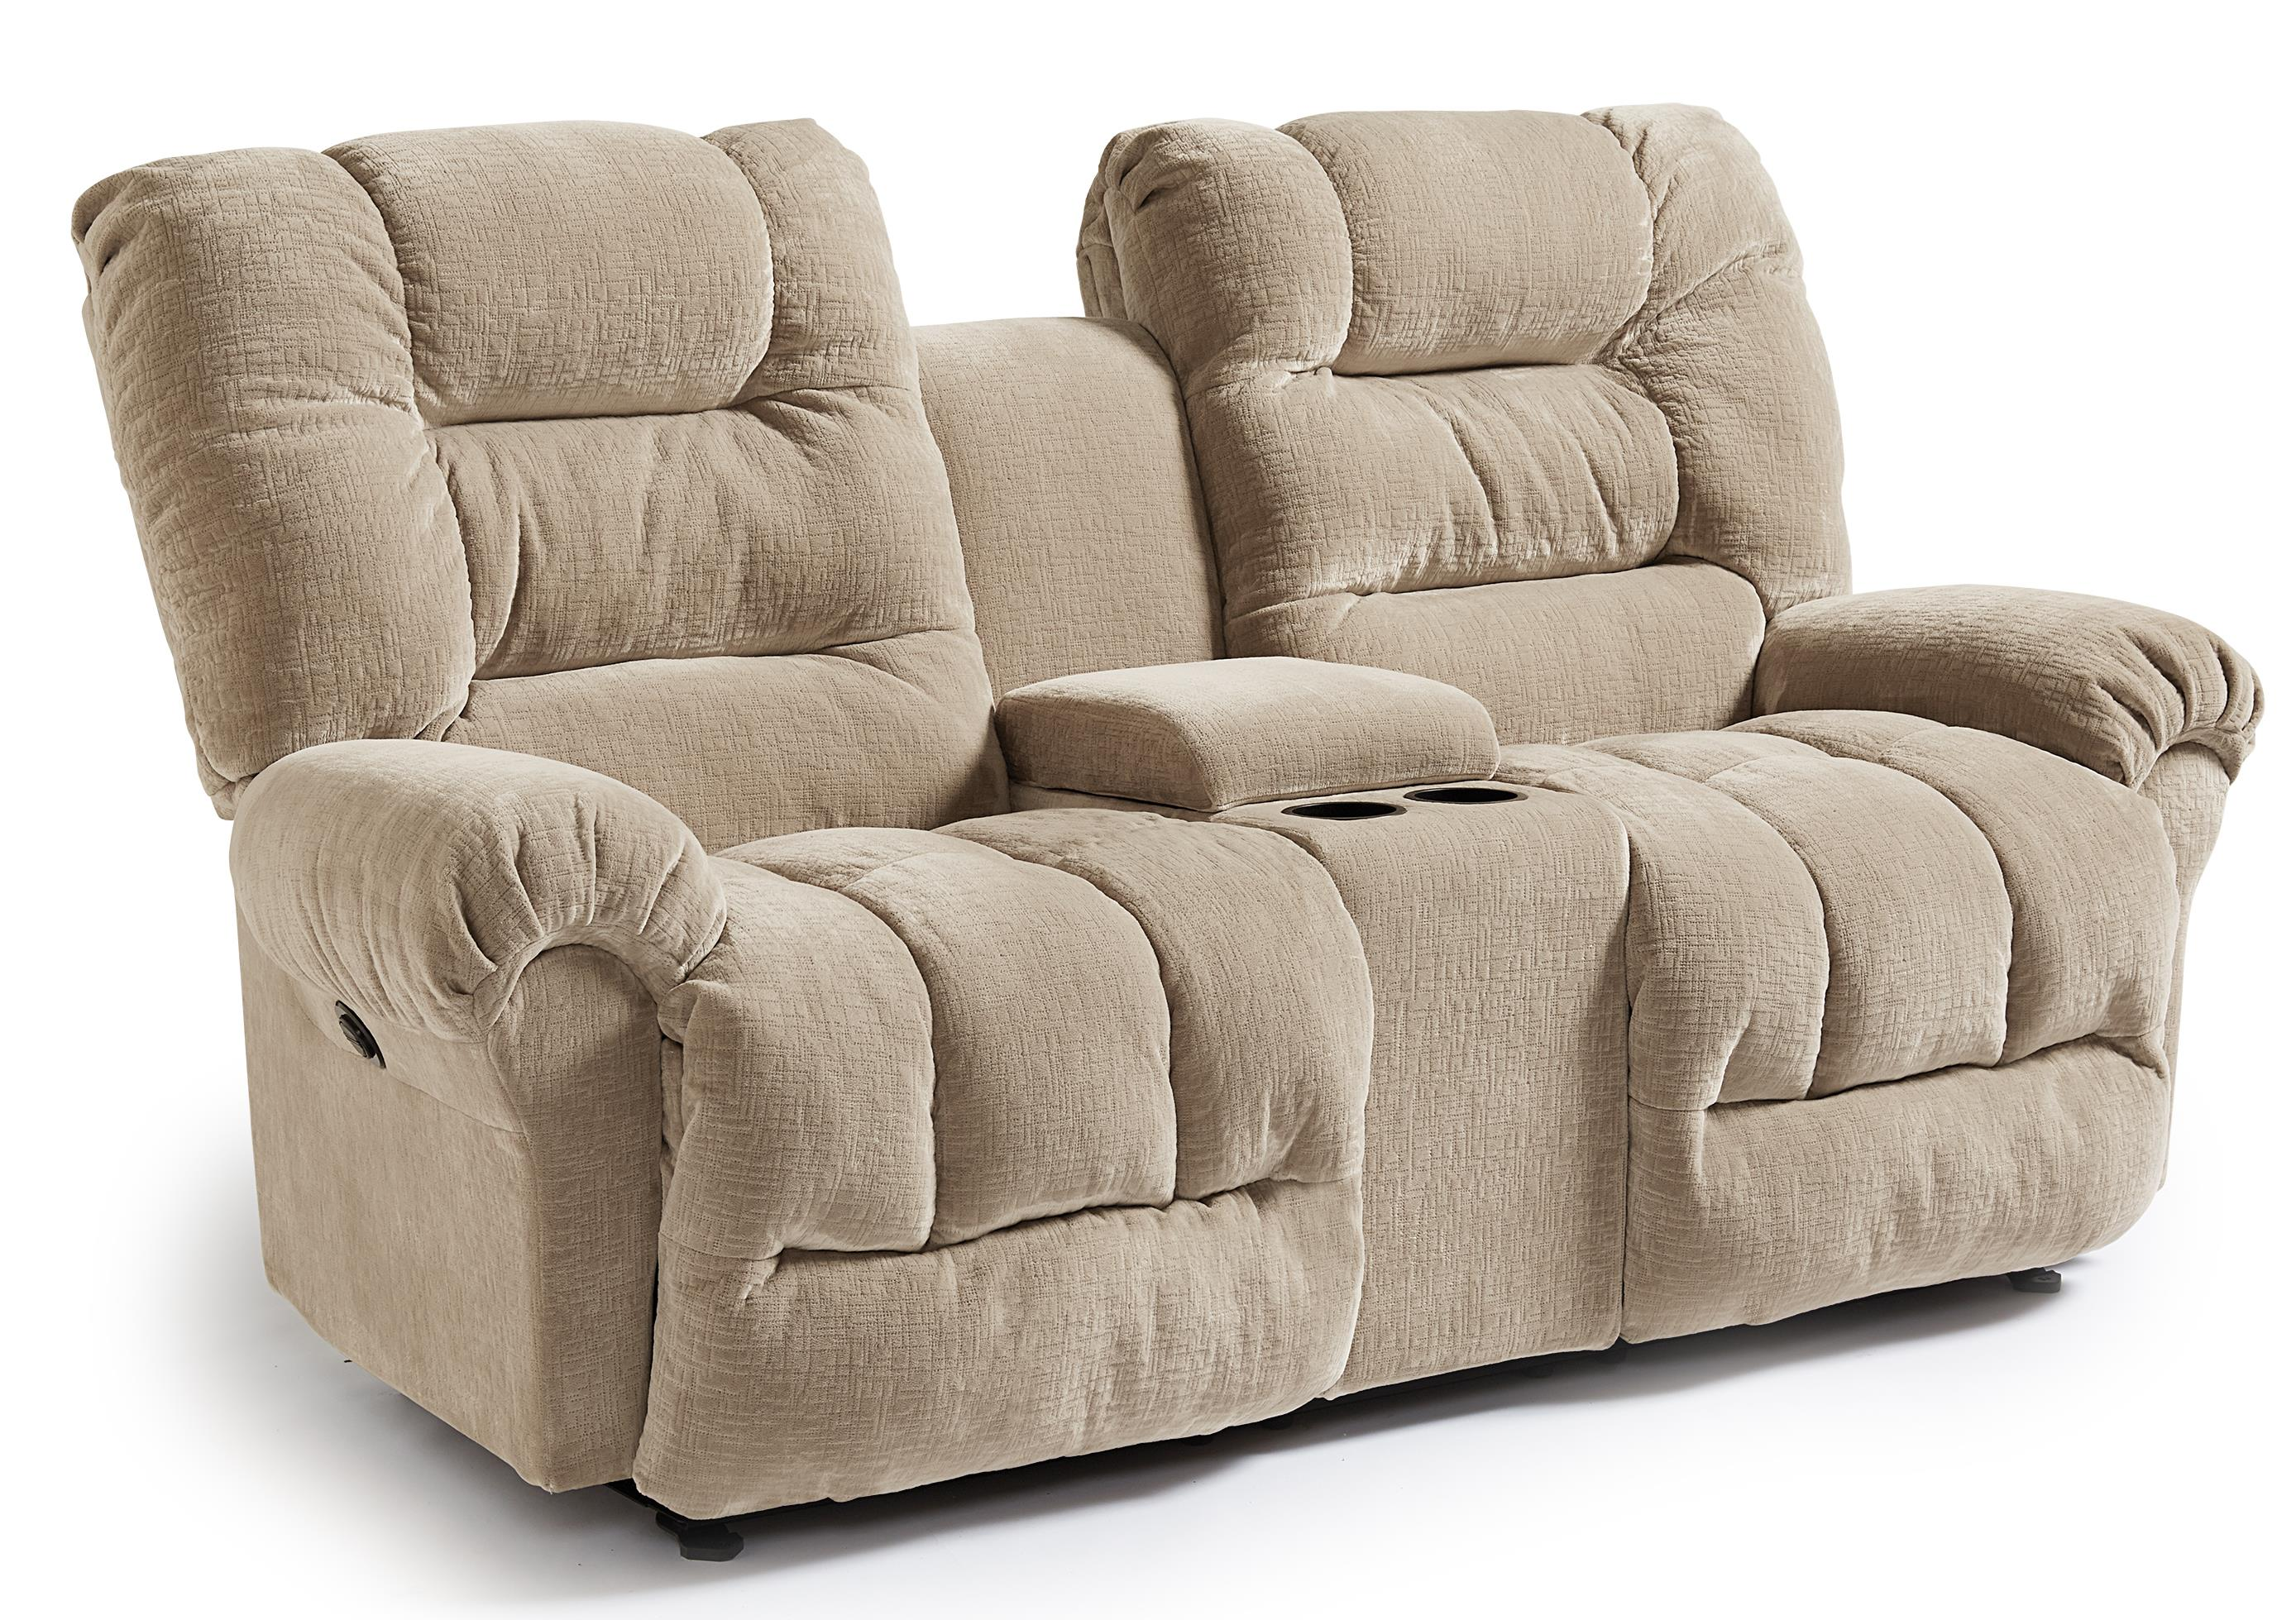 Casual Power Rocking Reclining Loveseat with Cupholder Console  sc 1 st  Wolf Furniture & Casual Power Rocking Reclining Loveseat with Cupholder Console by ... islam-shia.org